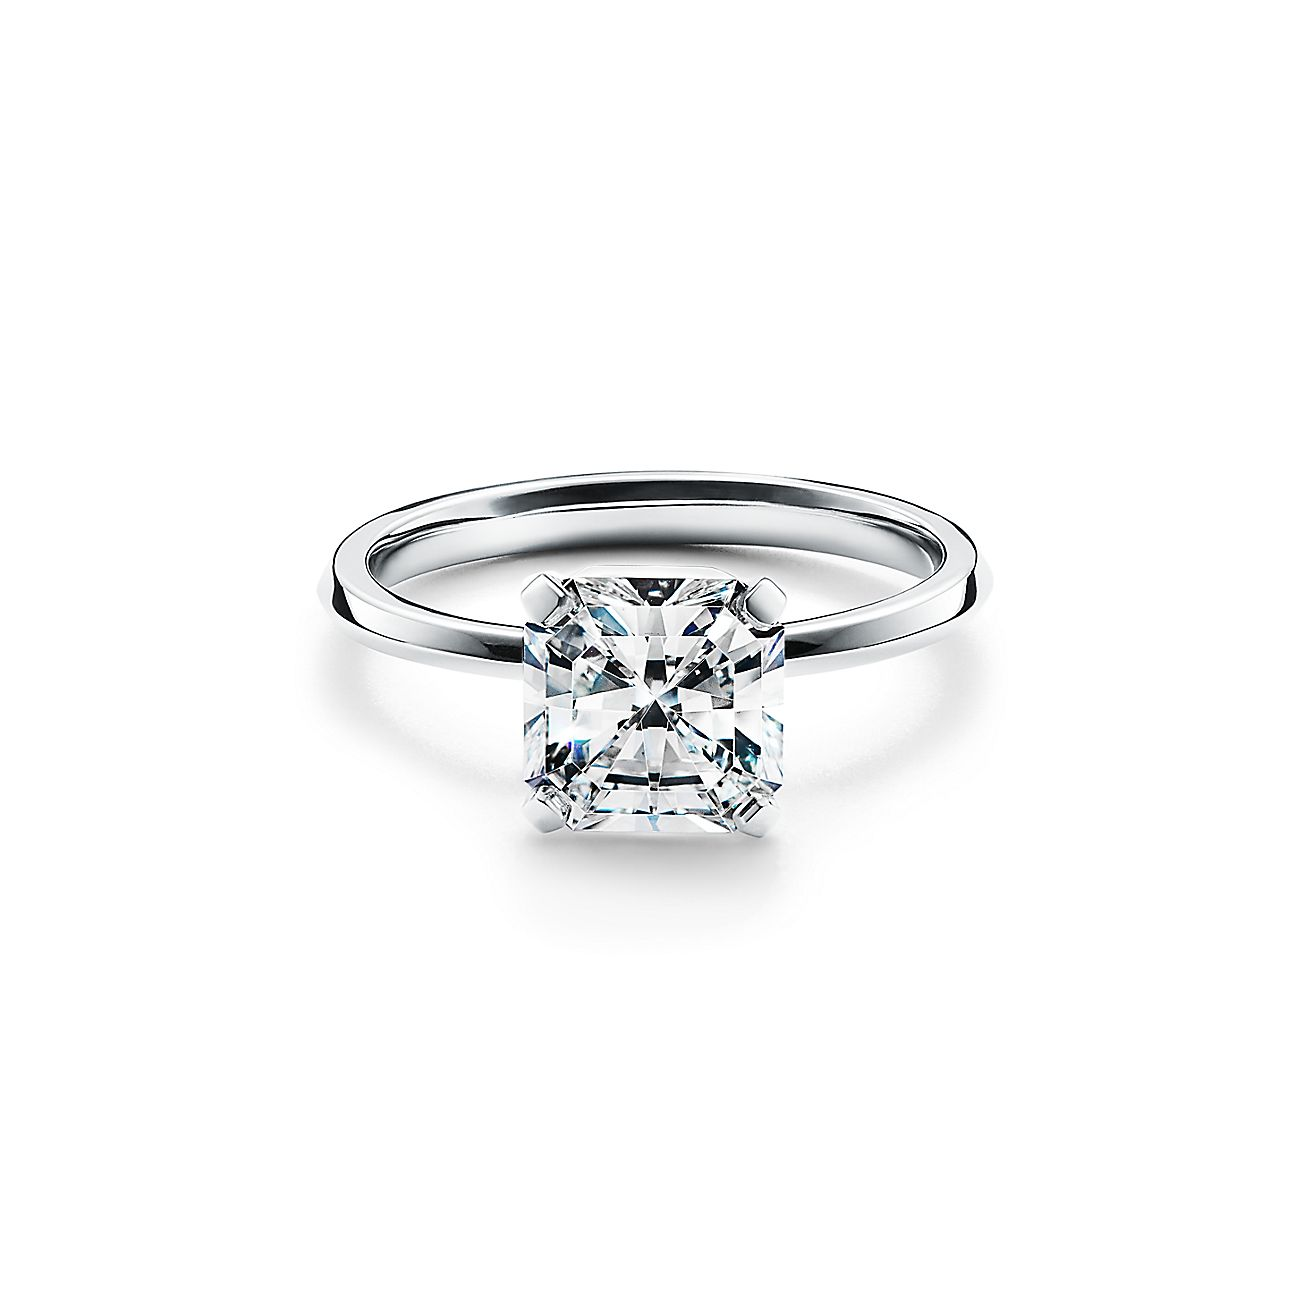 Tiffany True Engagement Ring With A Diamond In Platinum